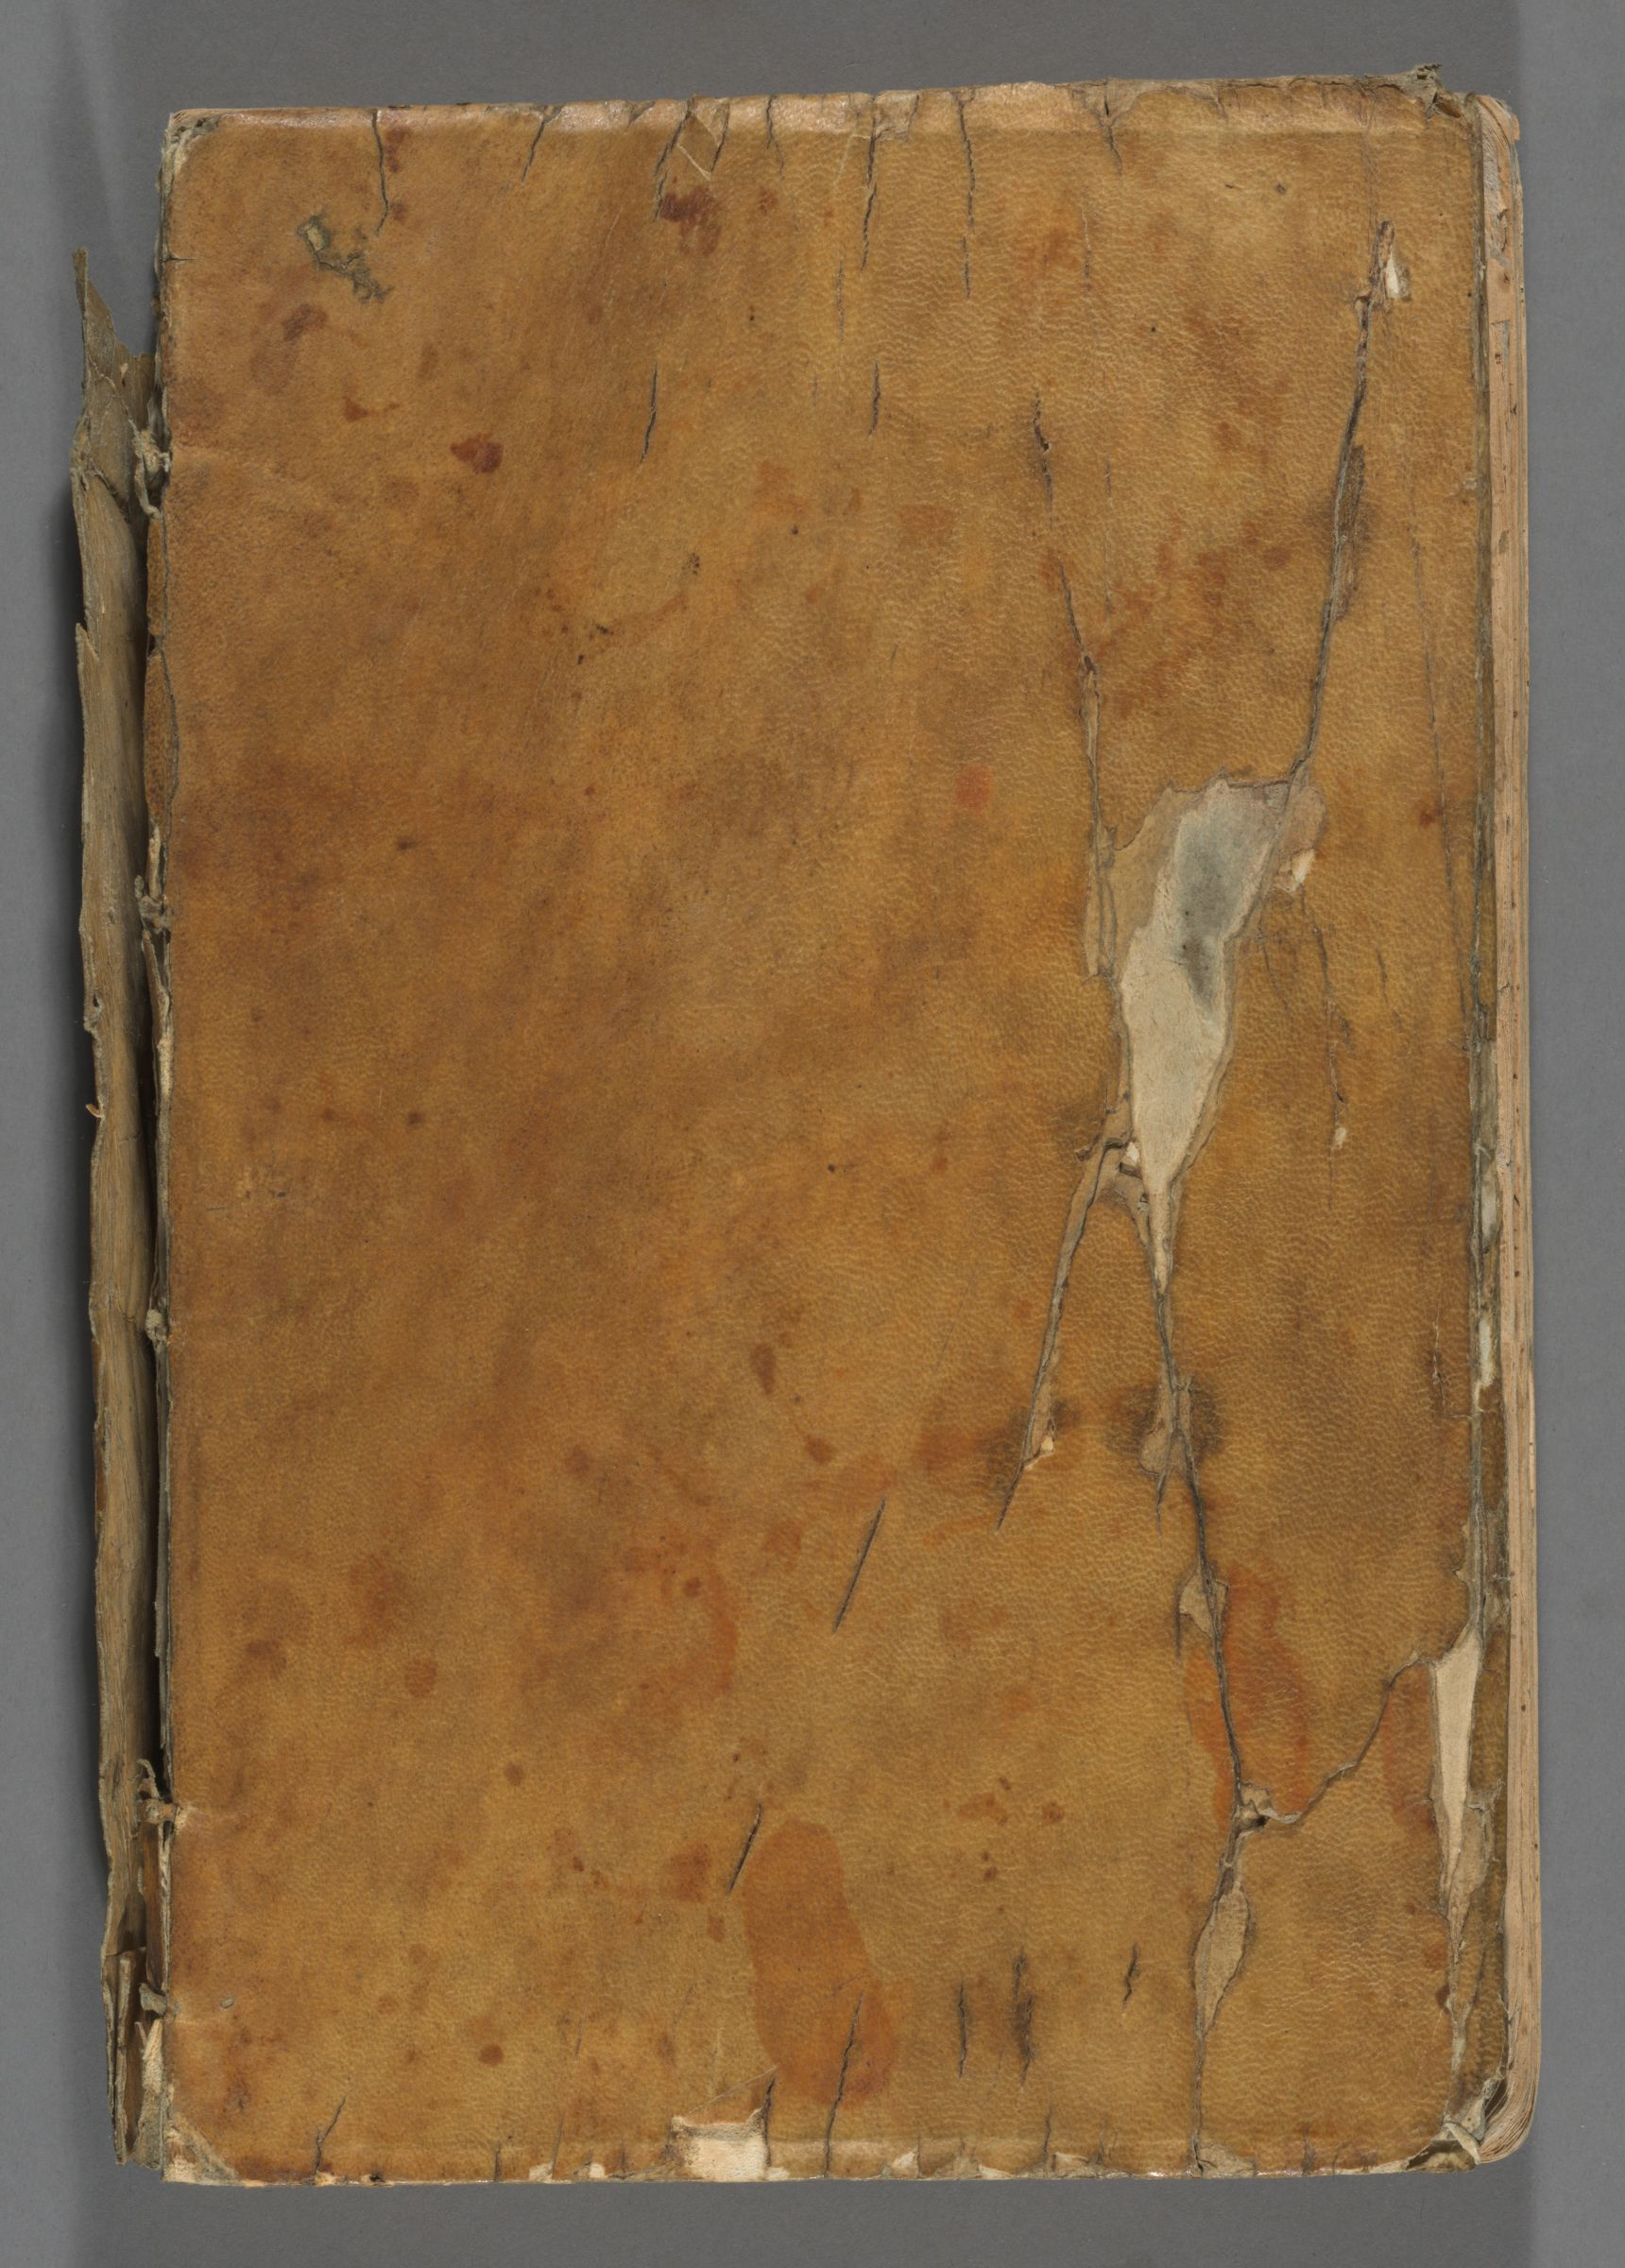 Ledger for the Classes of 1650-1663, 1649-1660